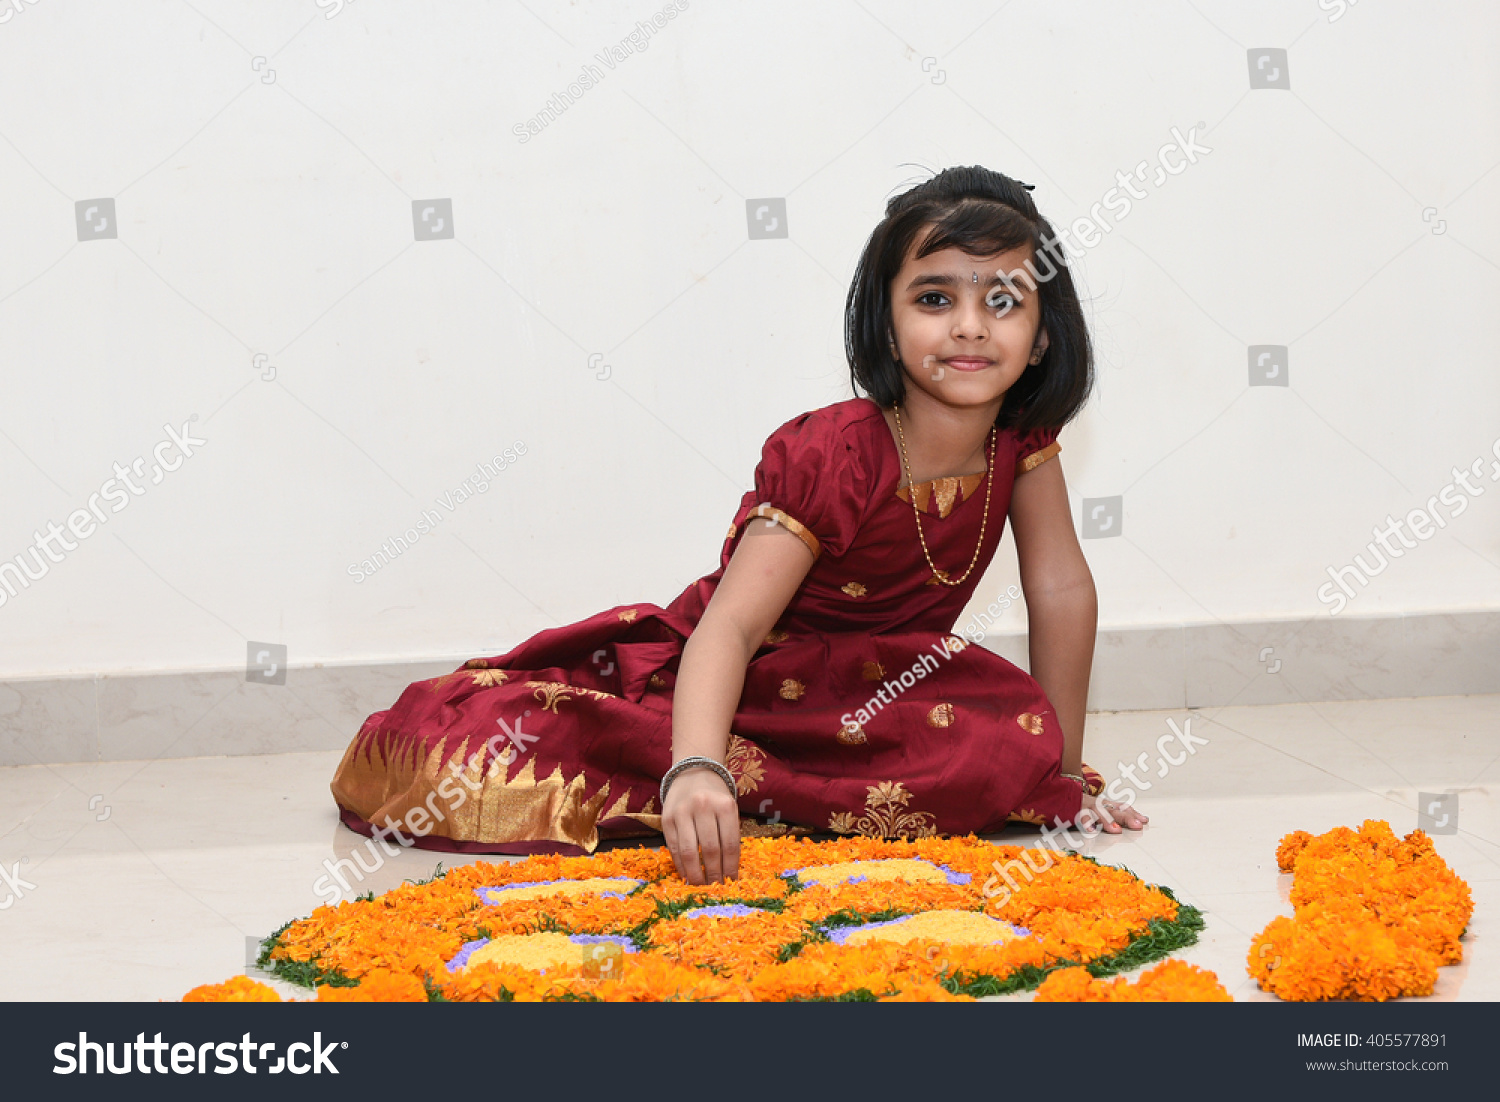 14a4c87bf Happy smiling playful young Indian / South Indian girl wearing traditional  dress holding / making flower